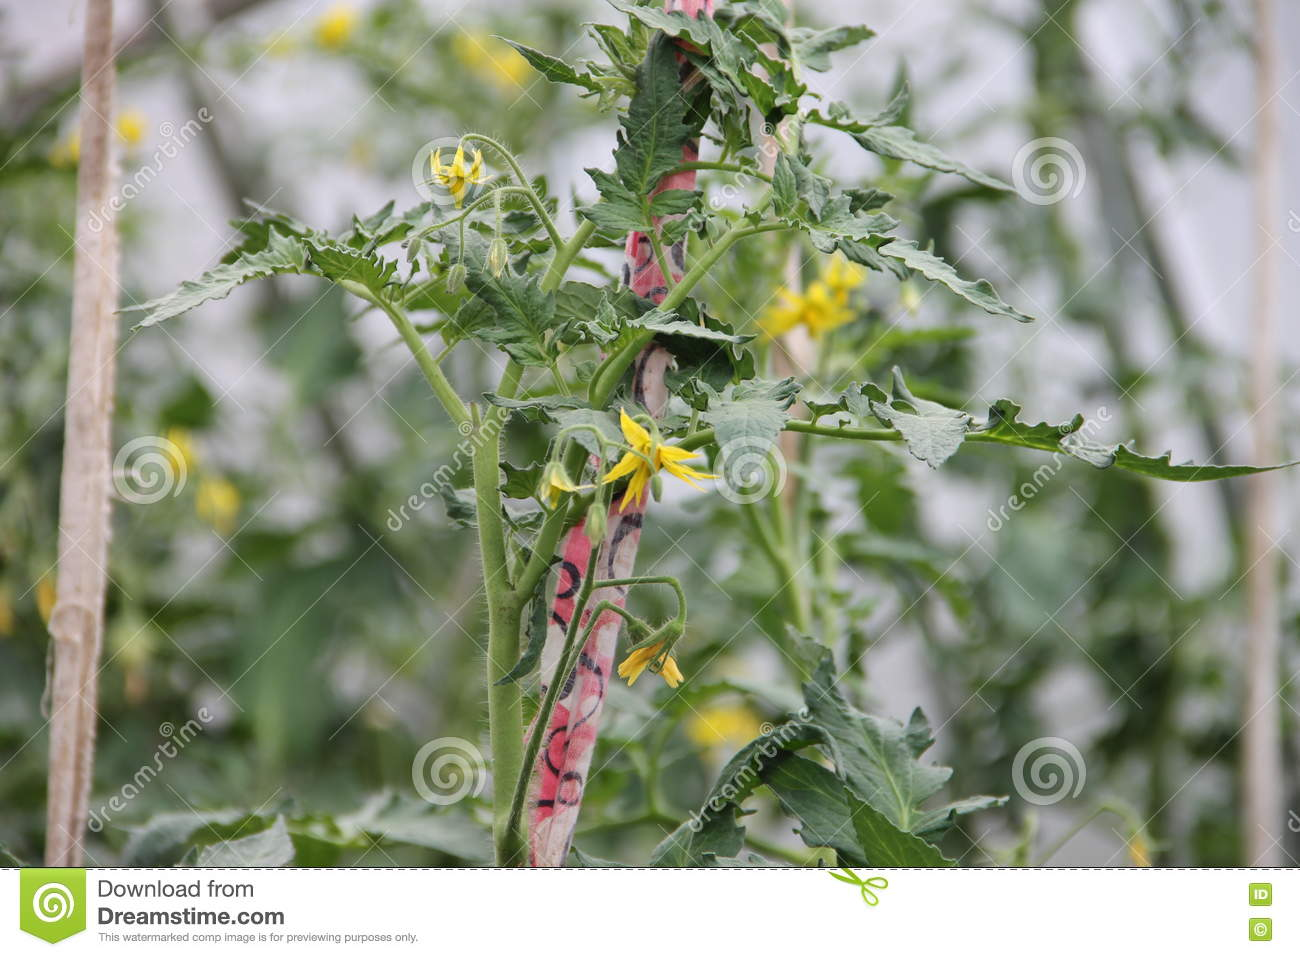 Yellow flowers and tomato plants growing in greenhouse indoors stock download yellow flowers and tomato plants growing in greenhouse indoors stock photo image of plants mightylinksfo